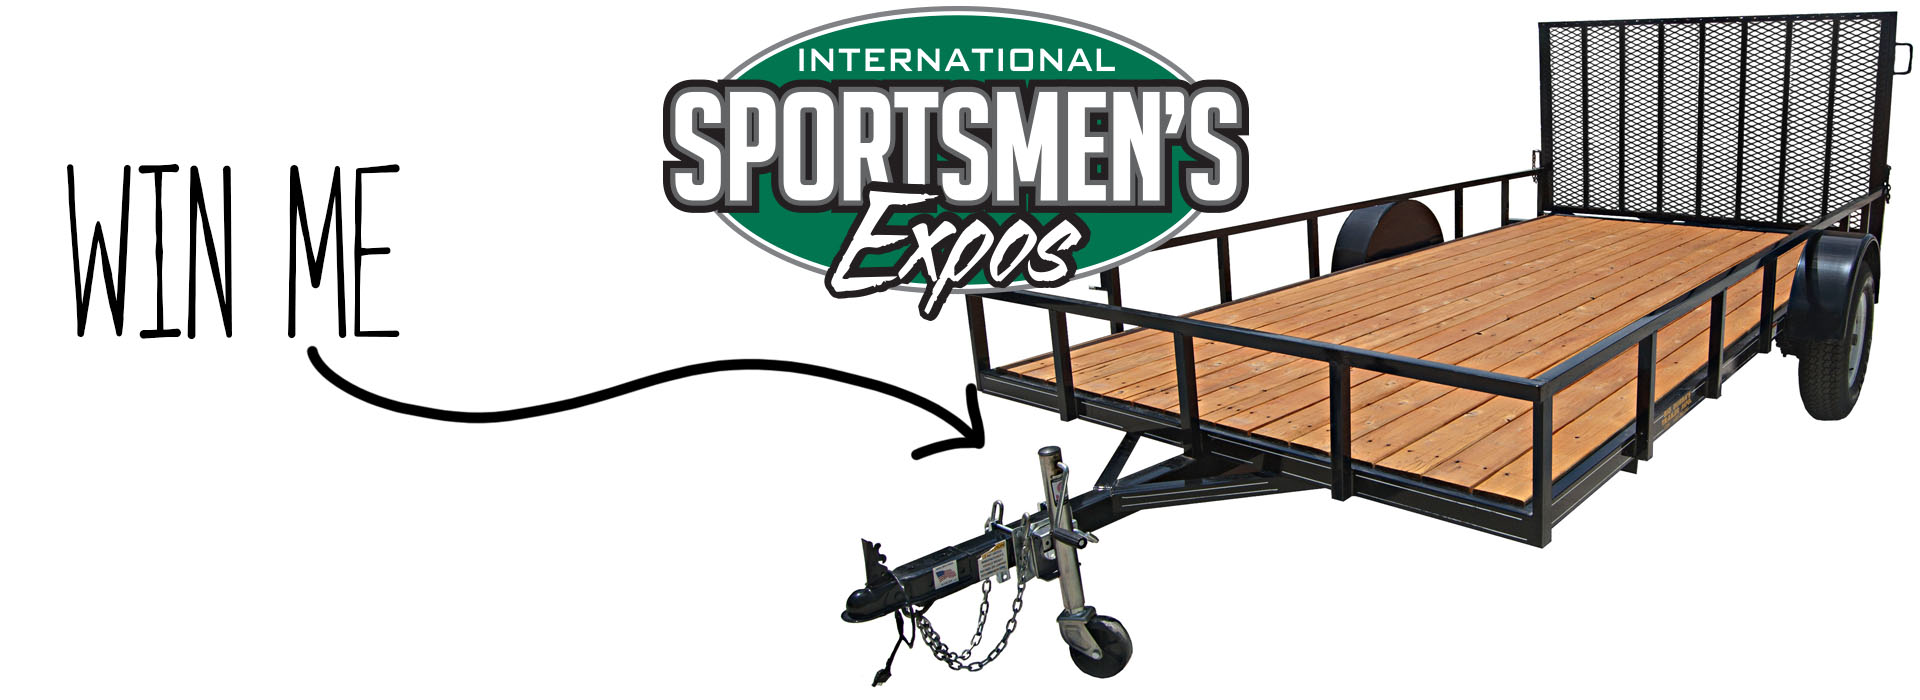 international-sportsmens-expo-big-bubbas-trailers-giveaway